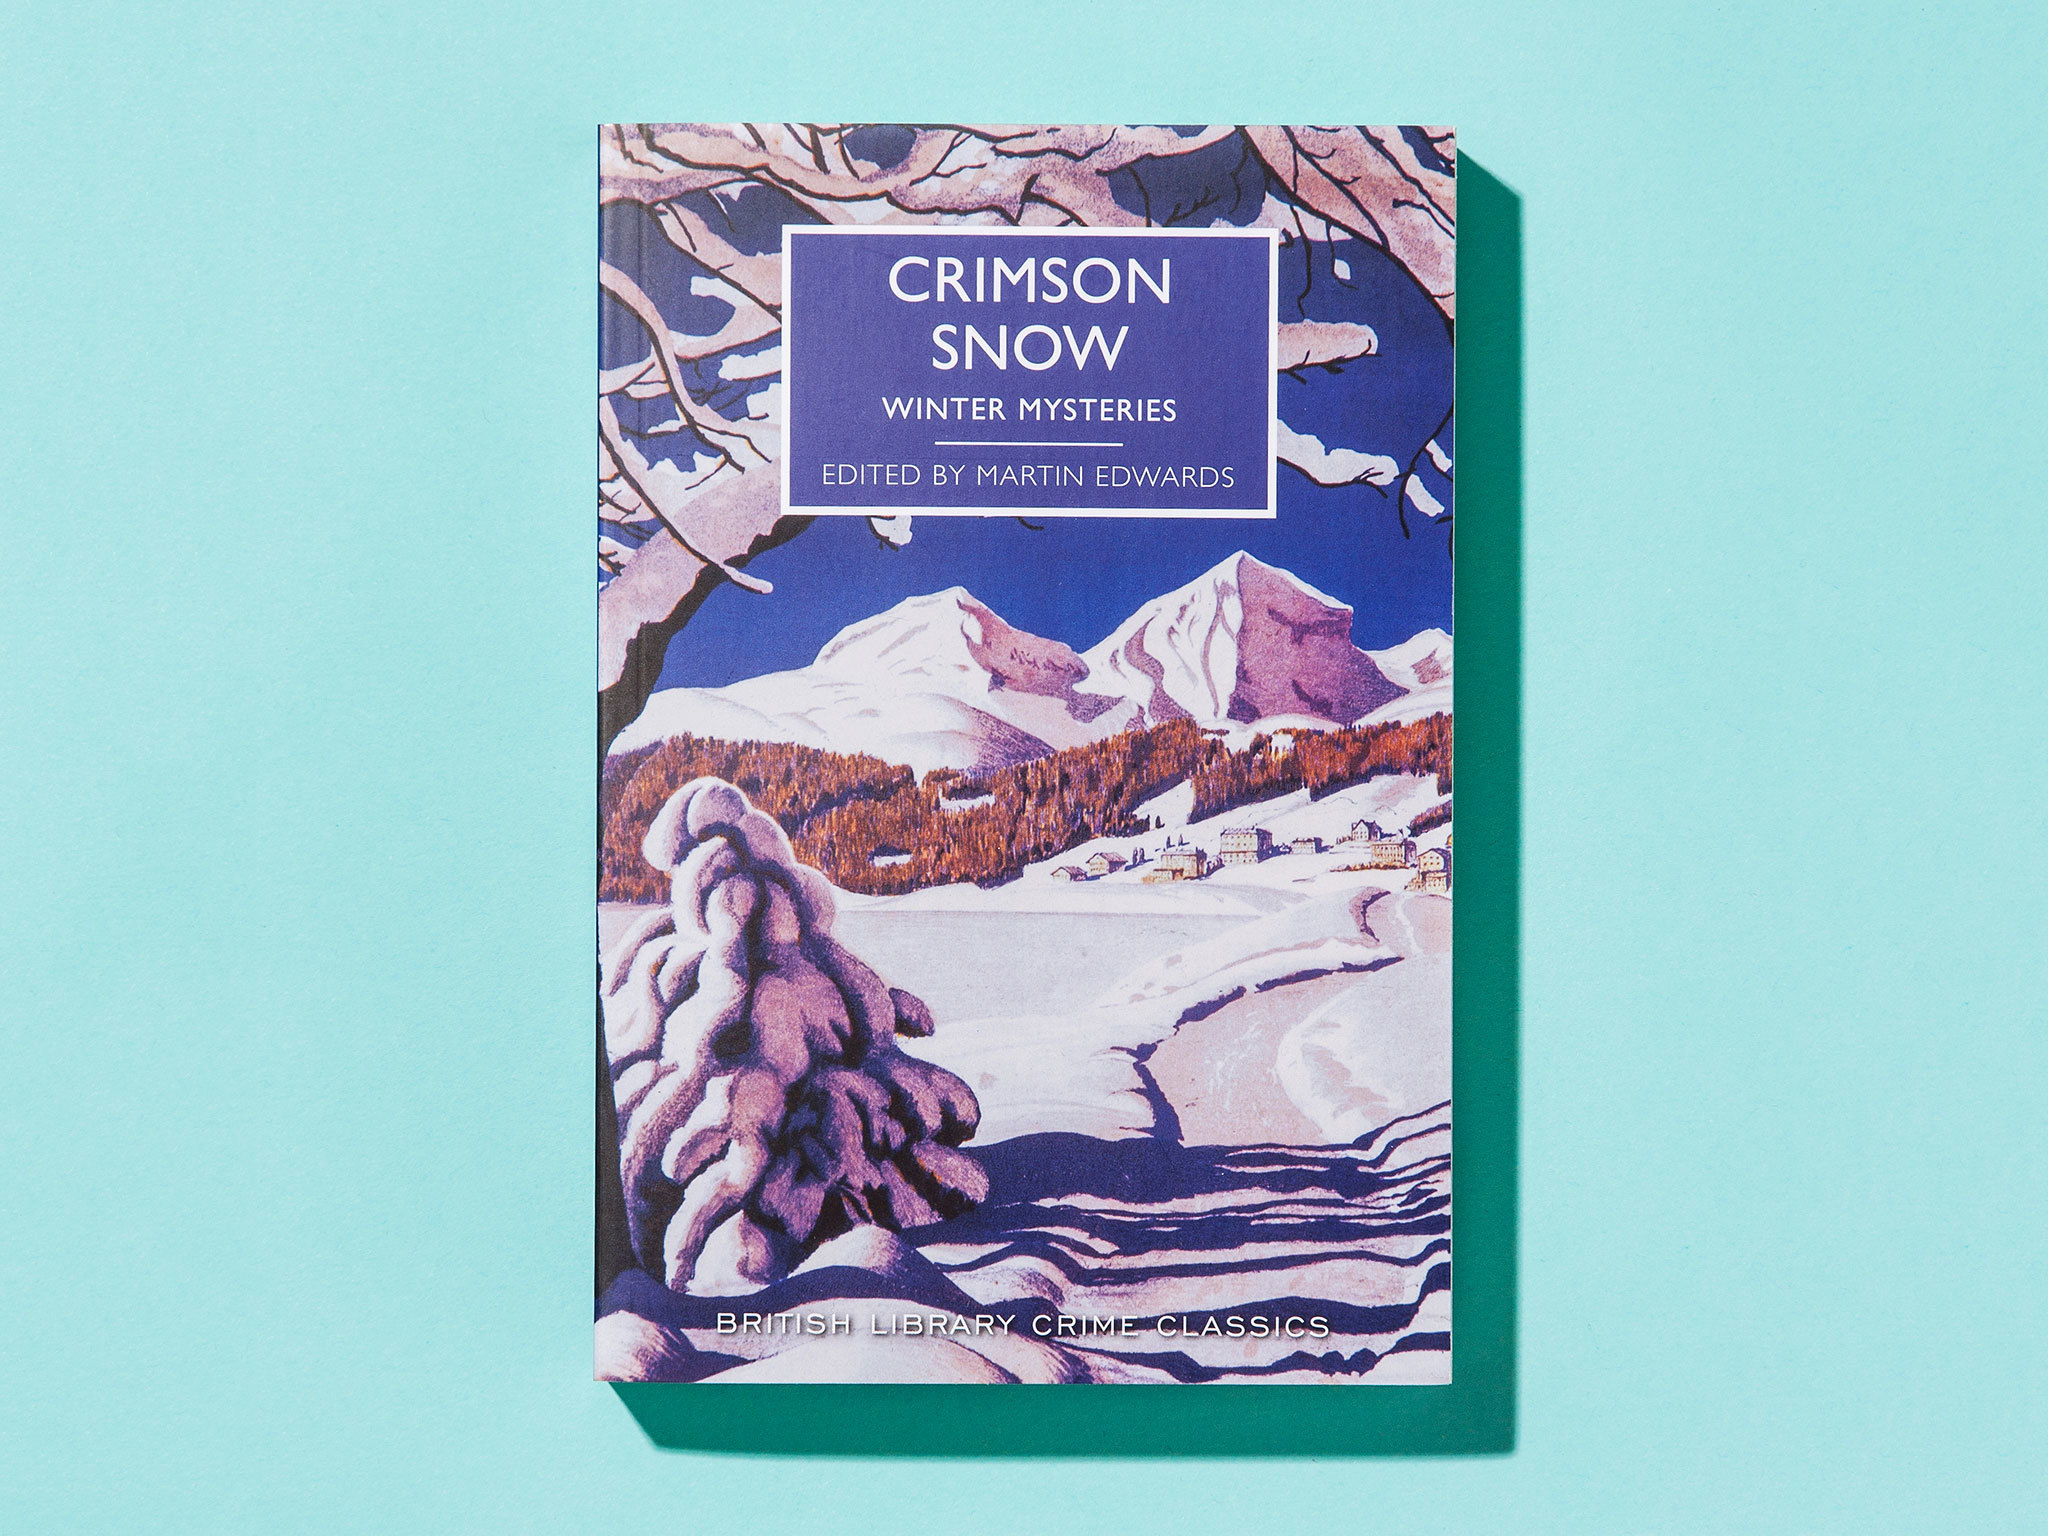 'Crimson Snow: Winter Mysteries' edited by Martin Edwards